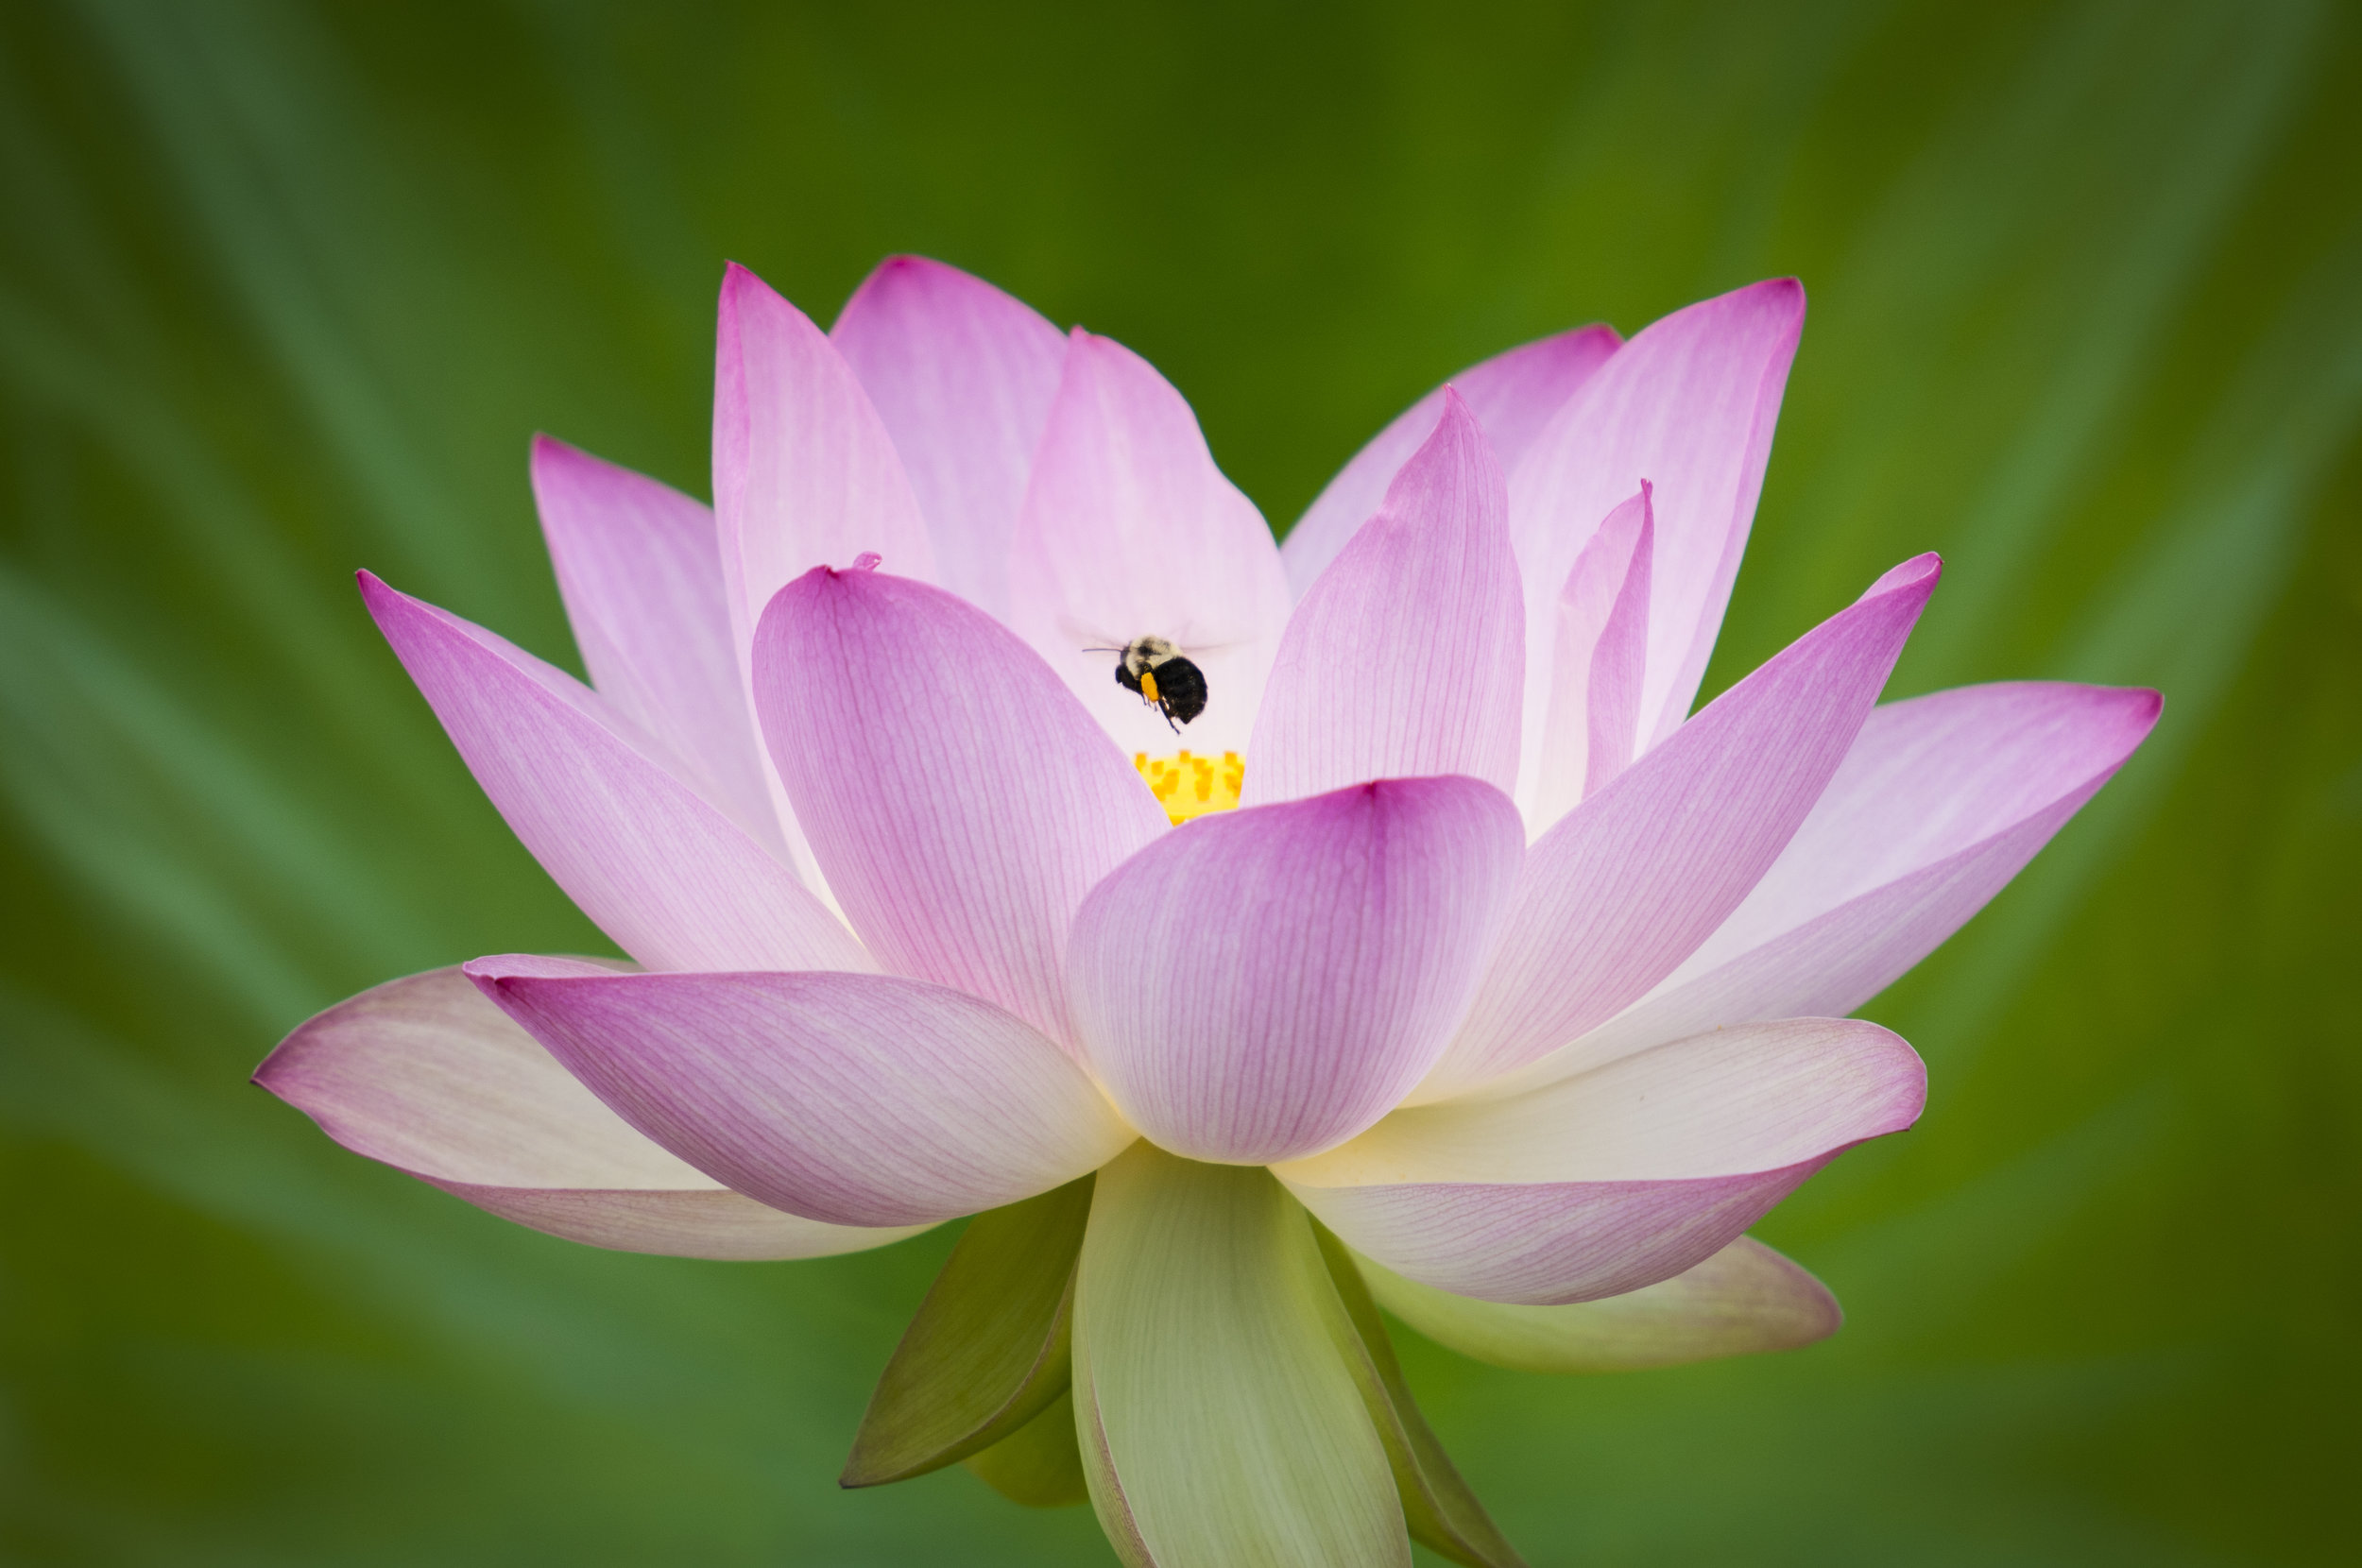 A beautiful, fully open lotus flower with a bumble bee buzzing into the center.